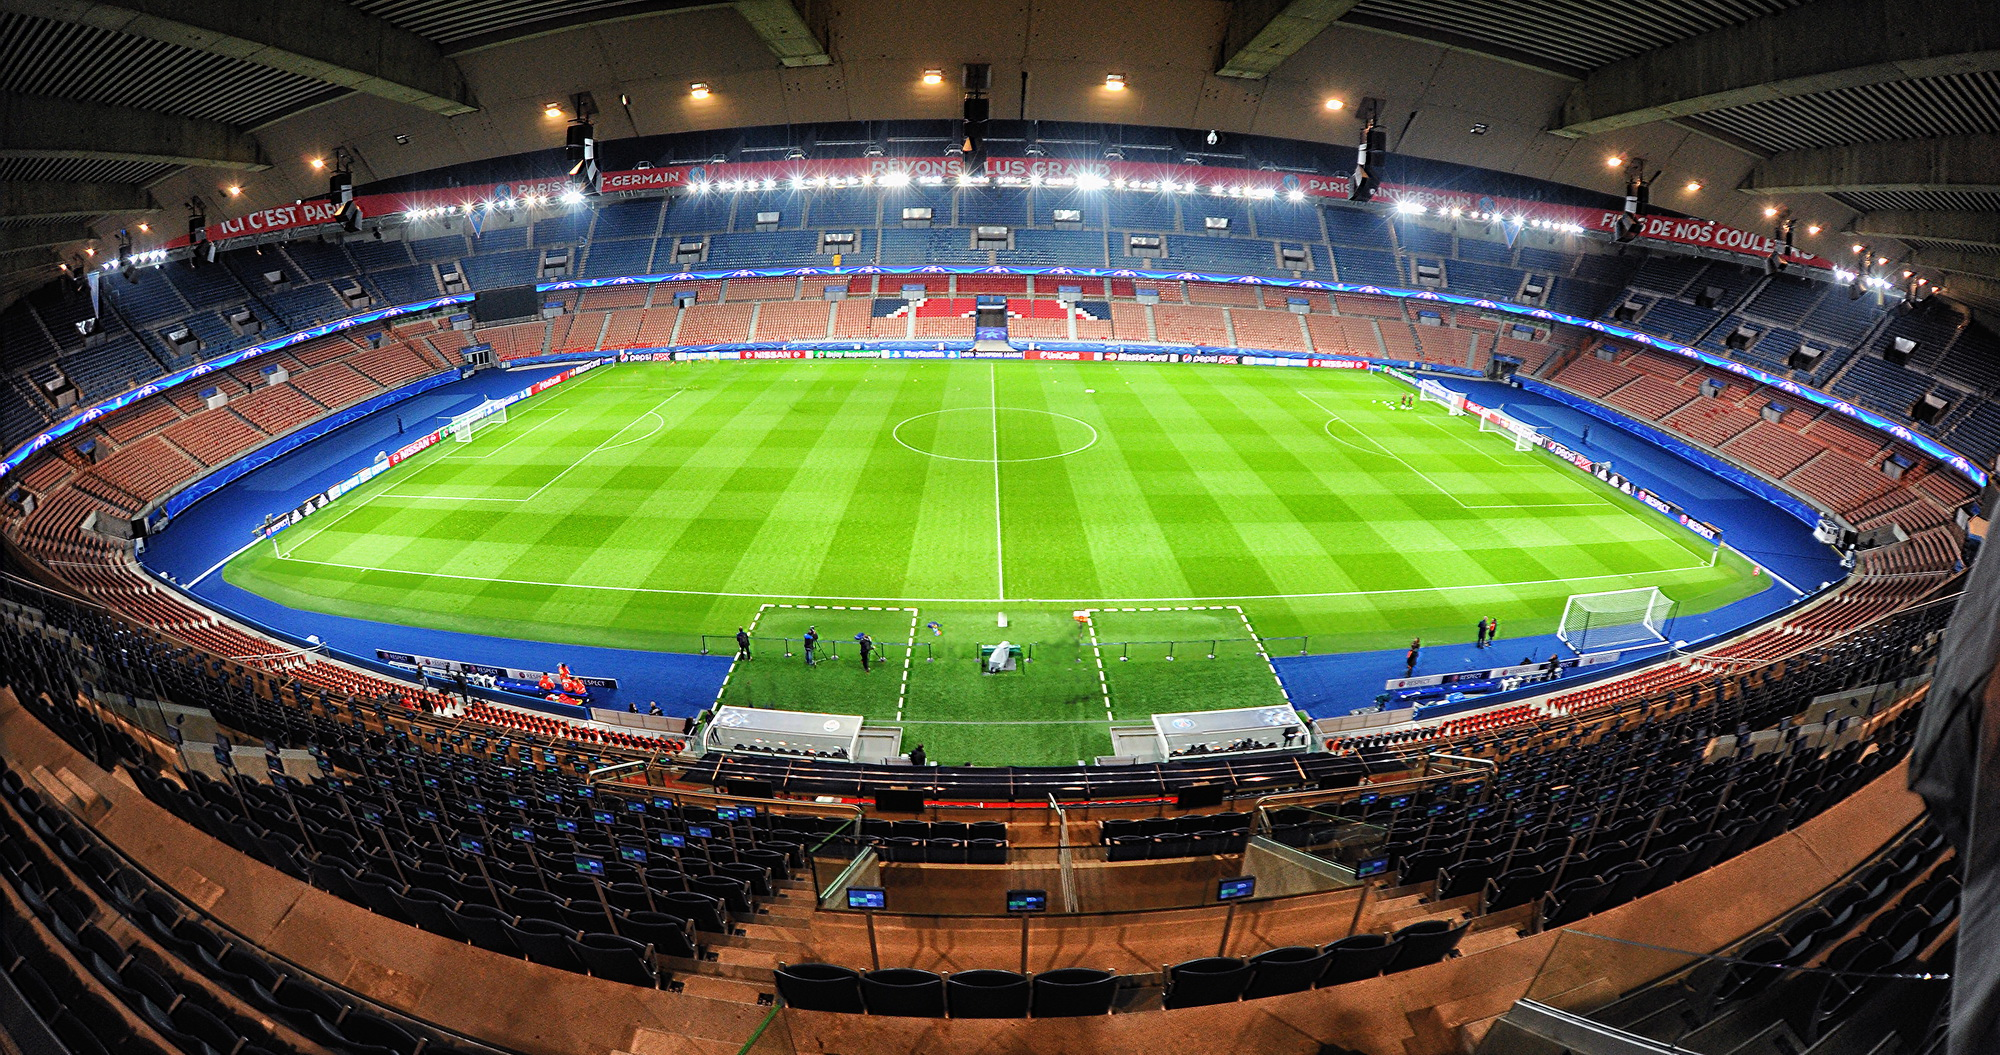 Made Bomb Found Near Parc Des Princes Stadium Hours Before PSG Fixture